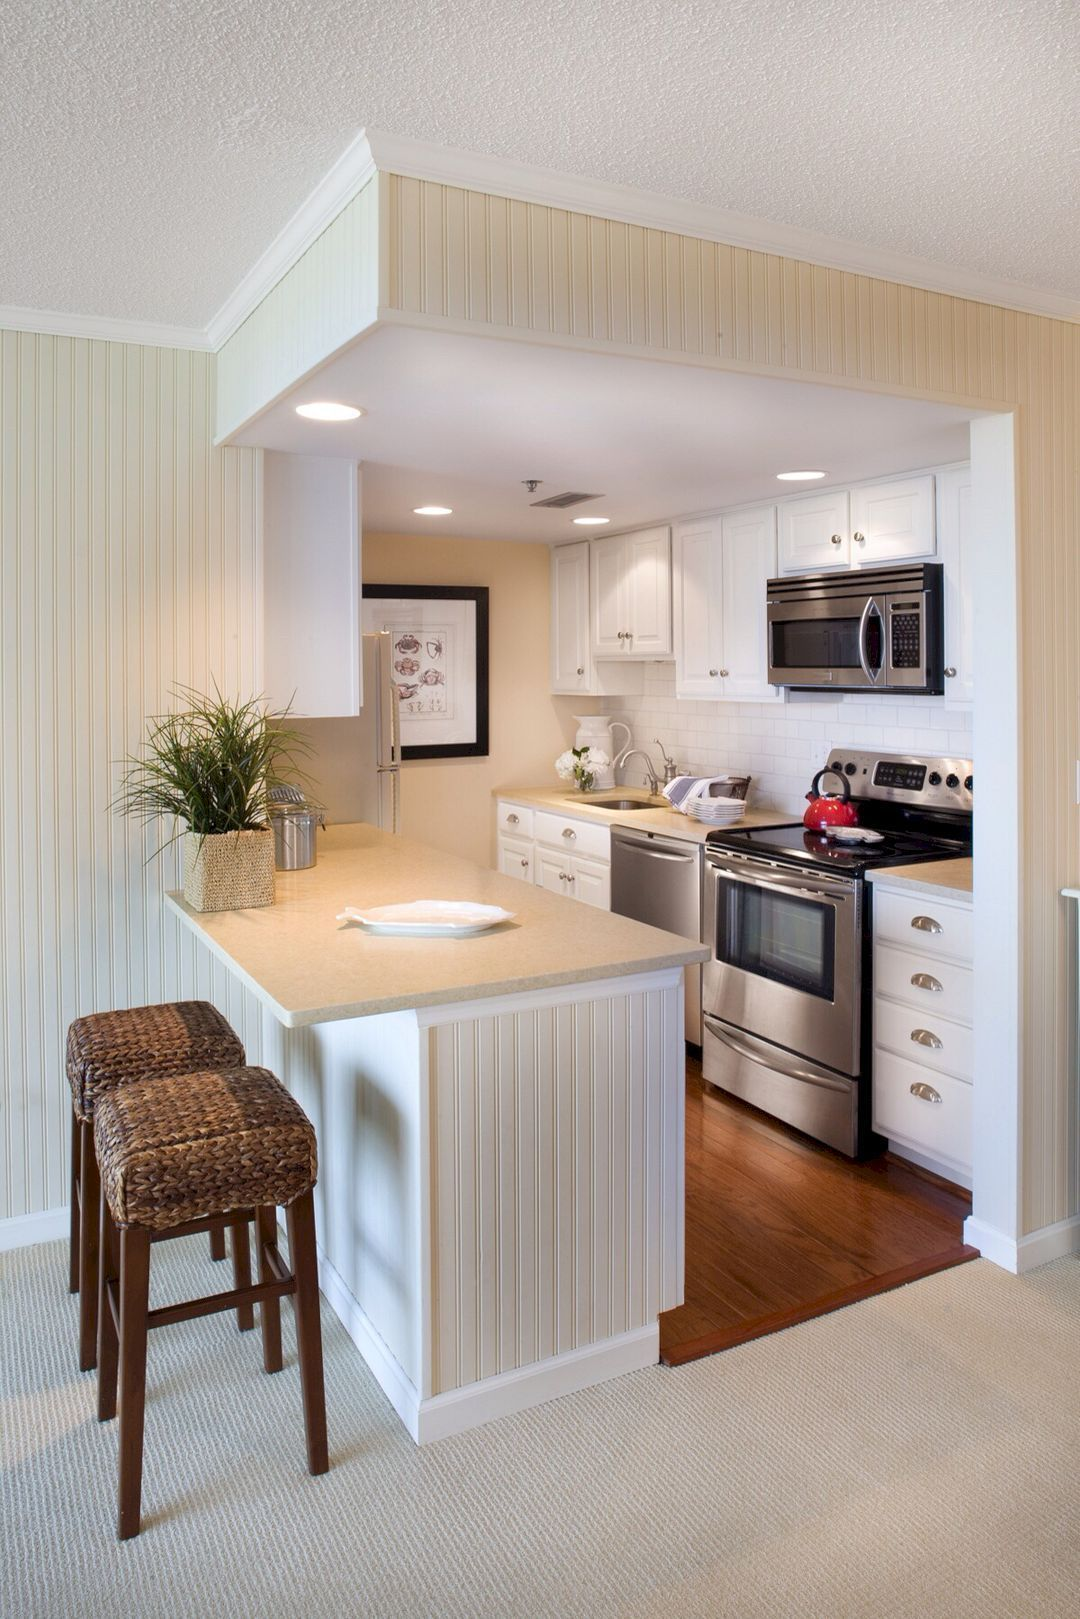 146 Amazing Small Kitchen Ideas That Perfect For Your Tiny Space Https://www